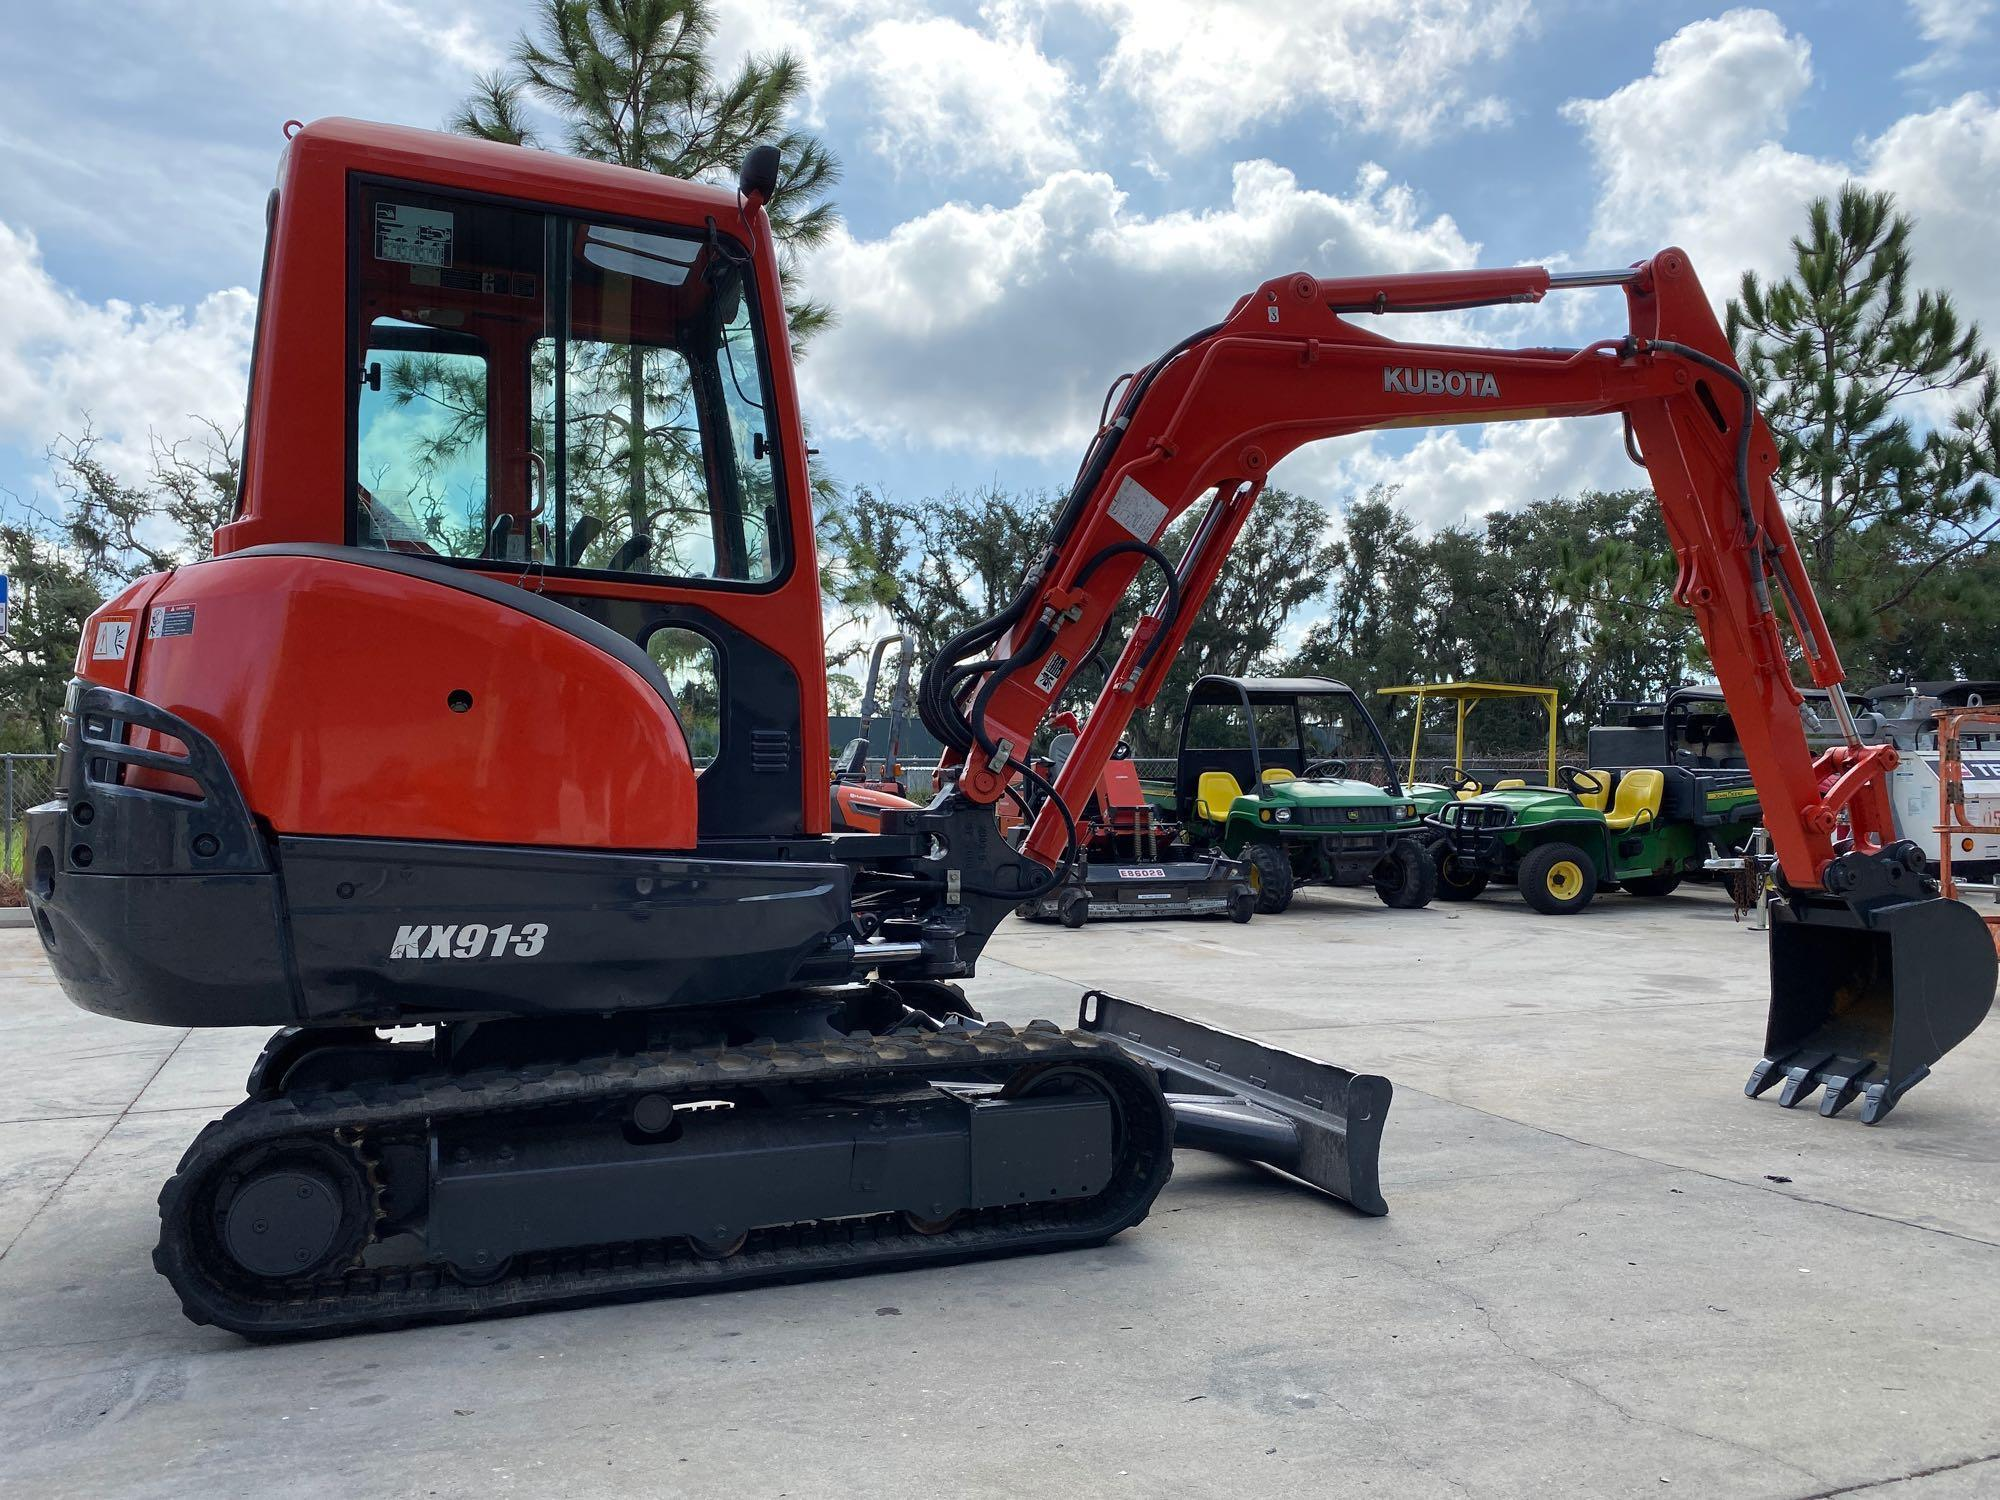 Lot 80 - KUBOTA KX913 EXCAVATOR, RUBBER TRACKS, BUCKET ATTACHMENT, FILL BLADE, ENCLOSED CAB, 2-SPEED, RUNS AN